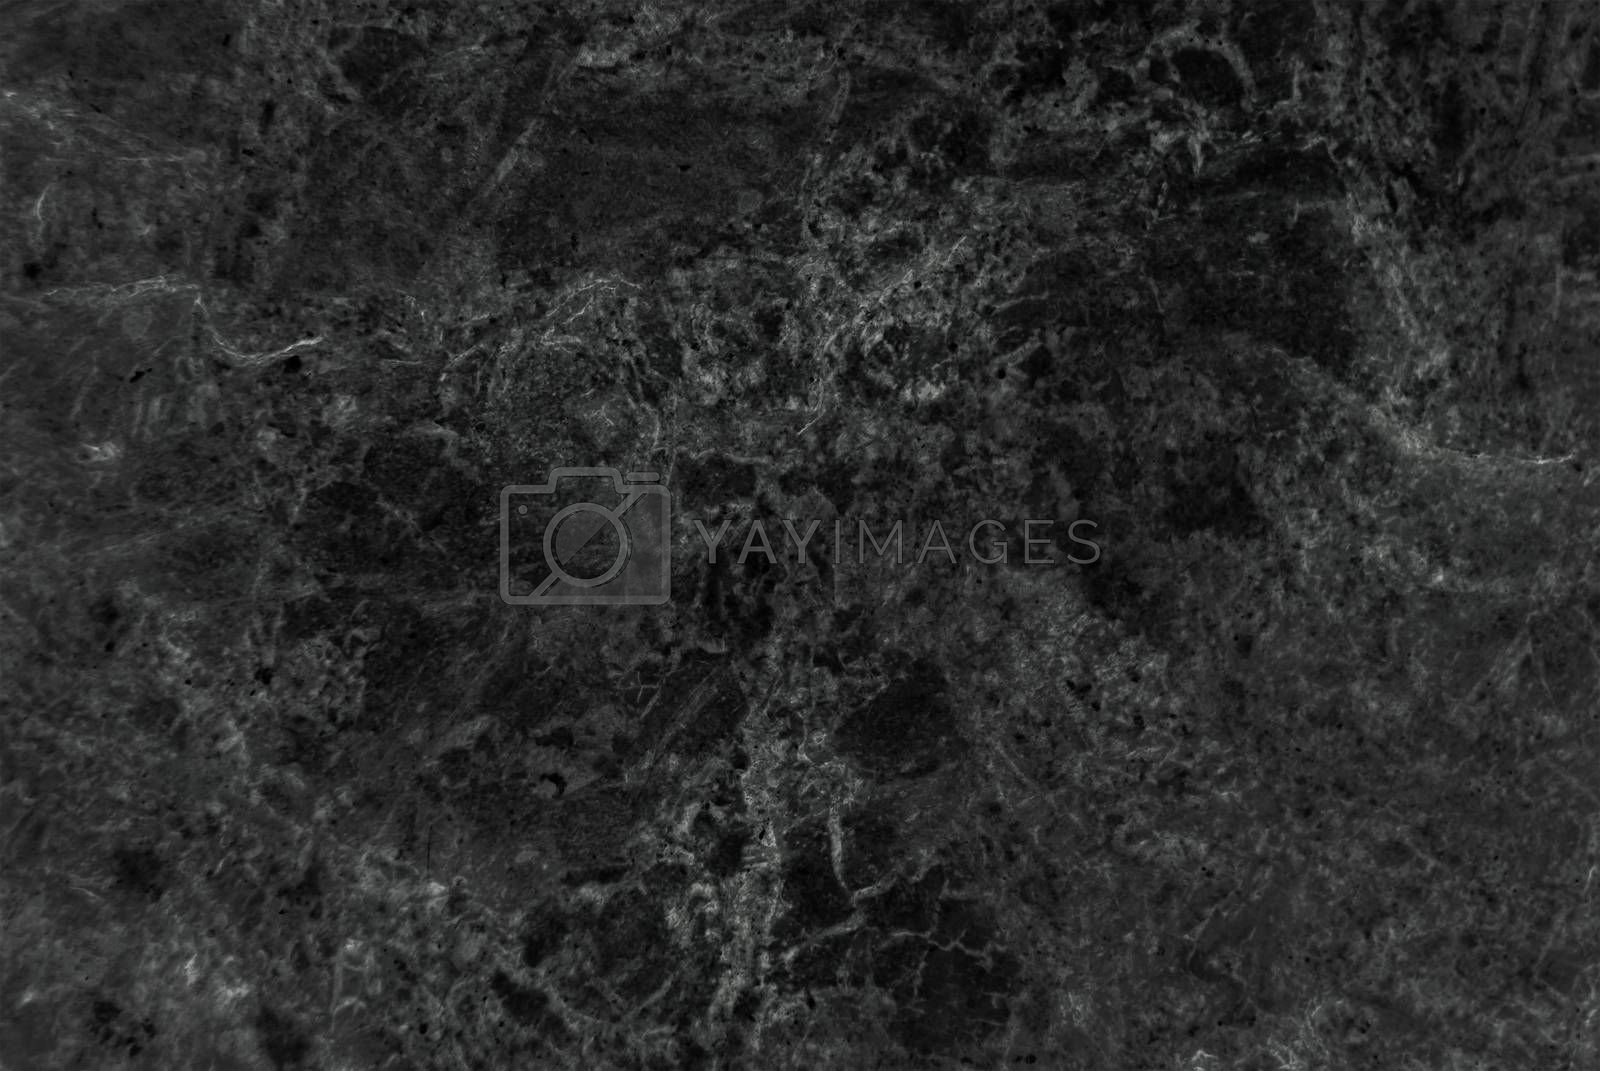 Black Marble Texture Background Royalty Free Stock Image Stock Photos Royalty Free Images Vectors Footage Yayimages